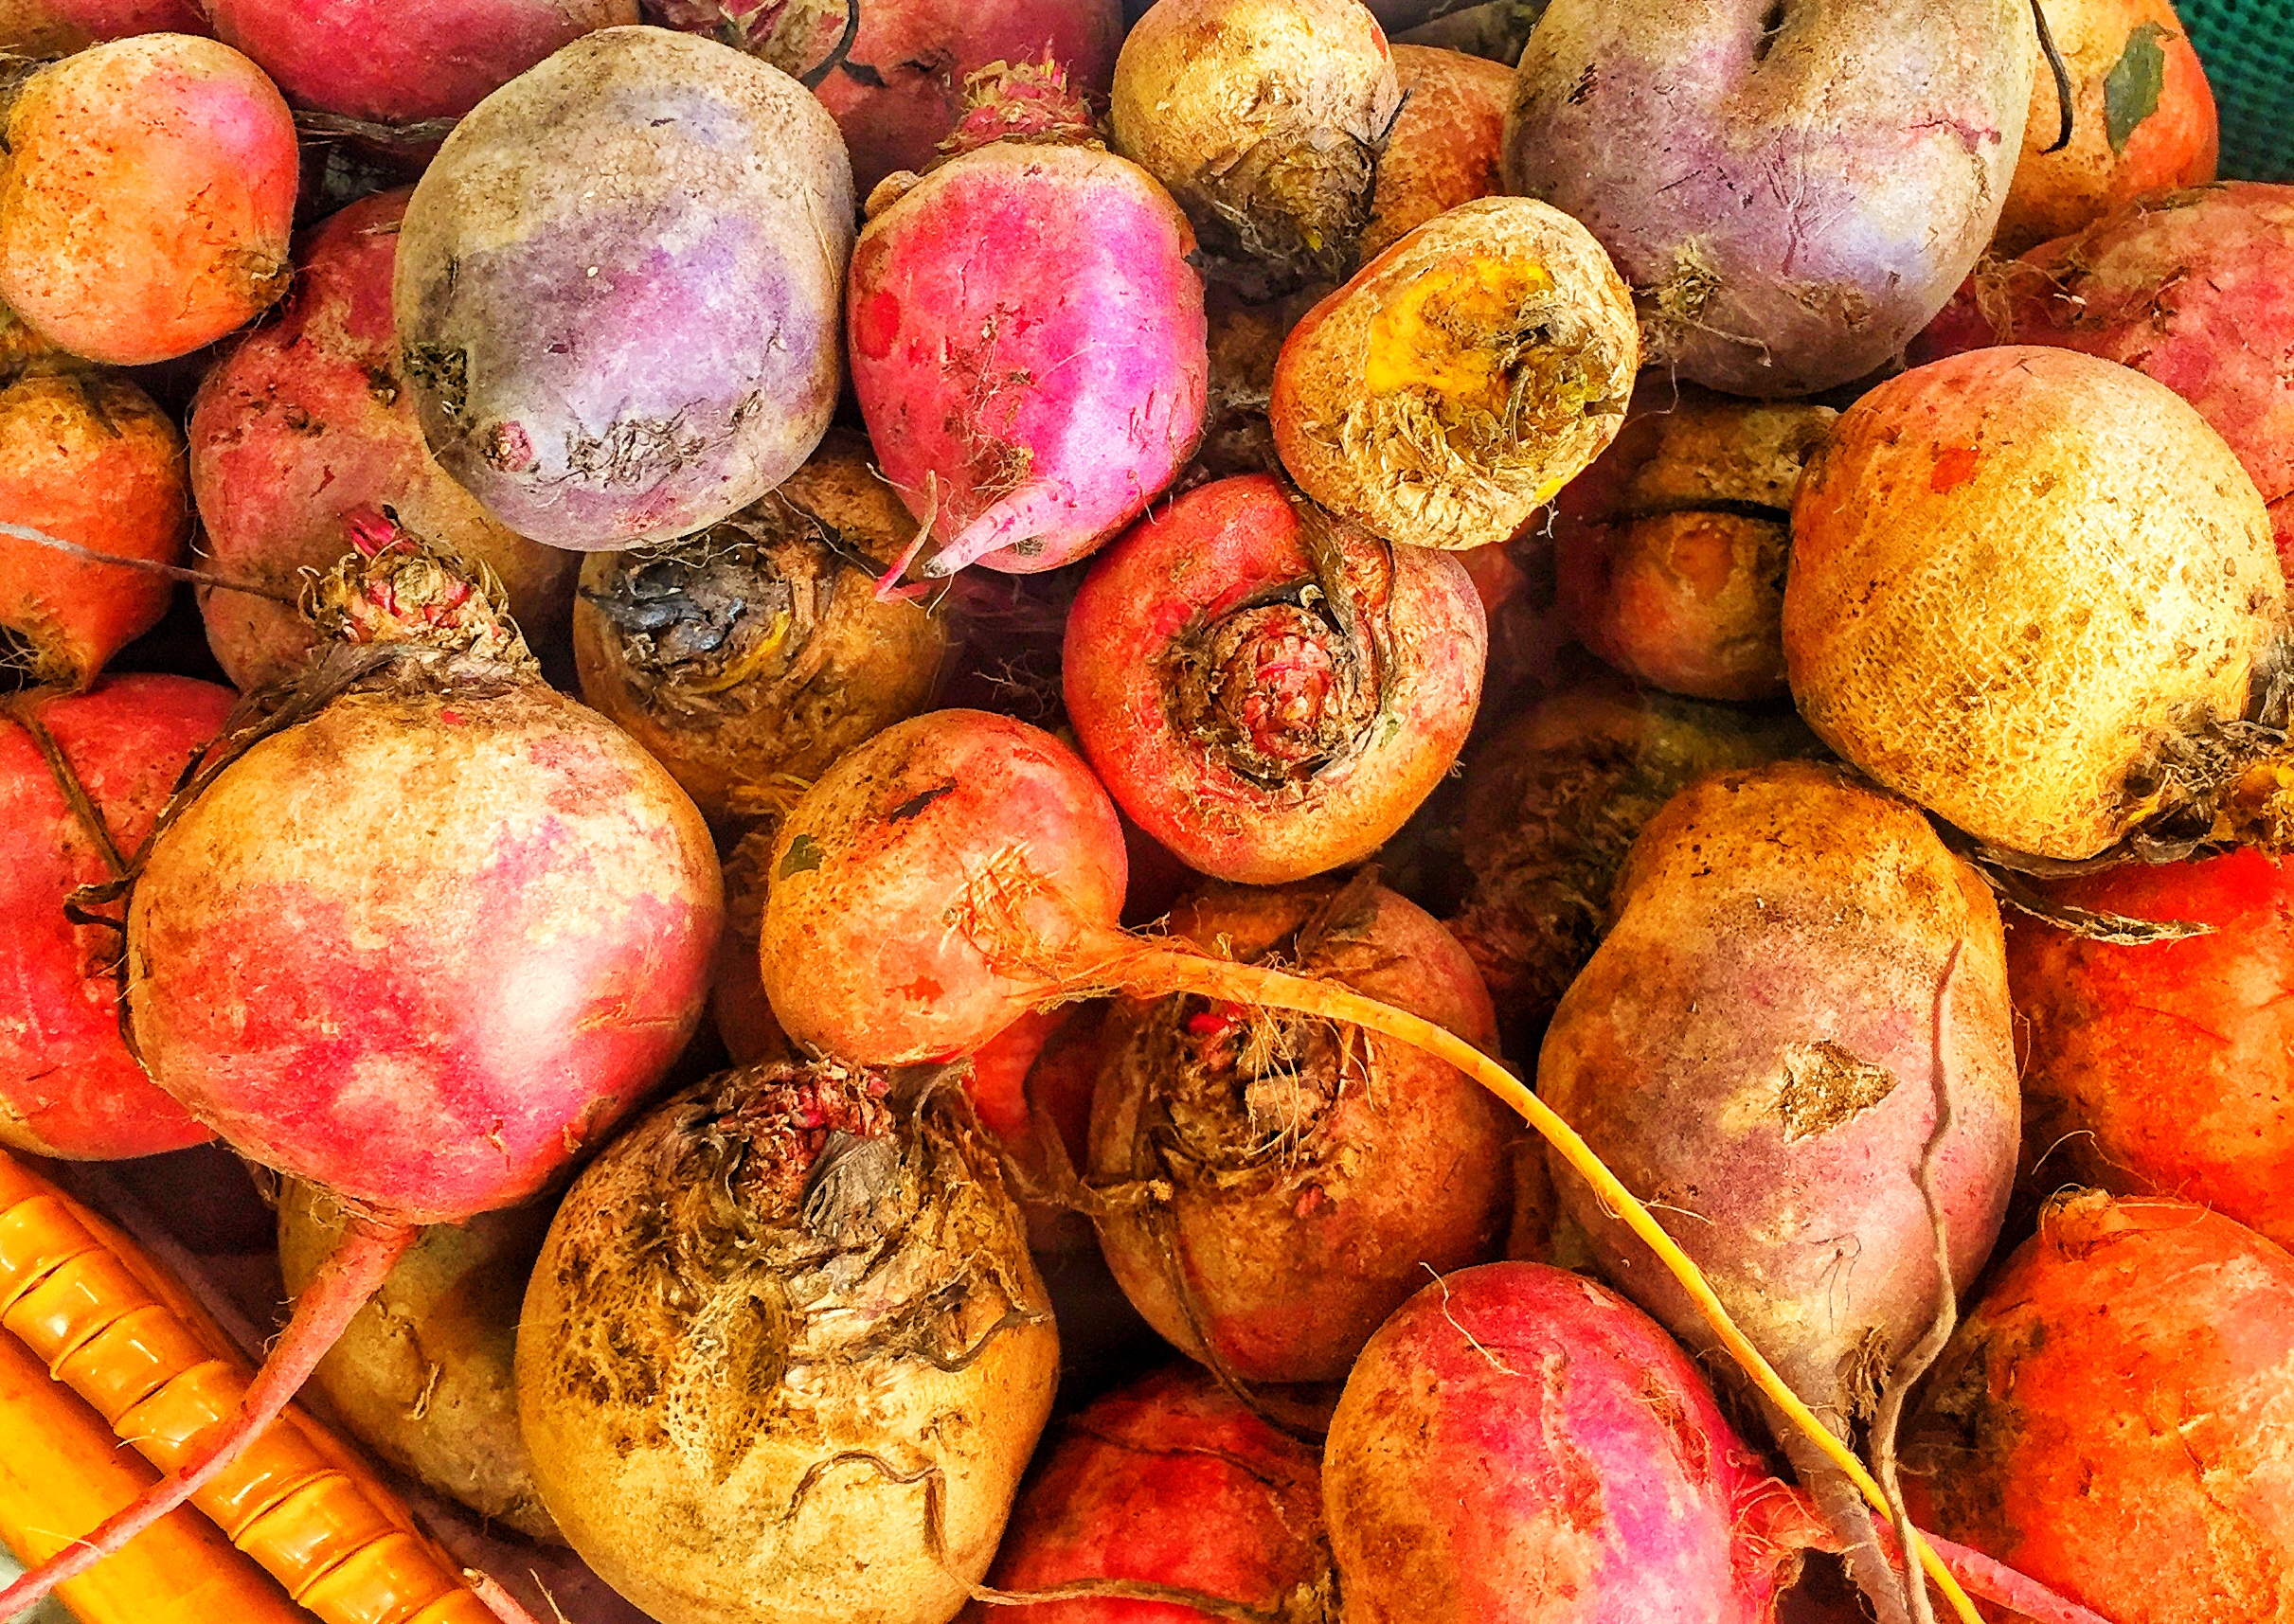 Organic rainbow beets at Russo's